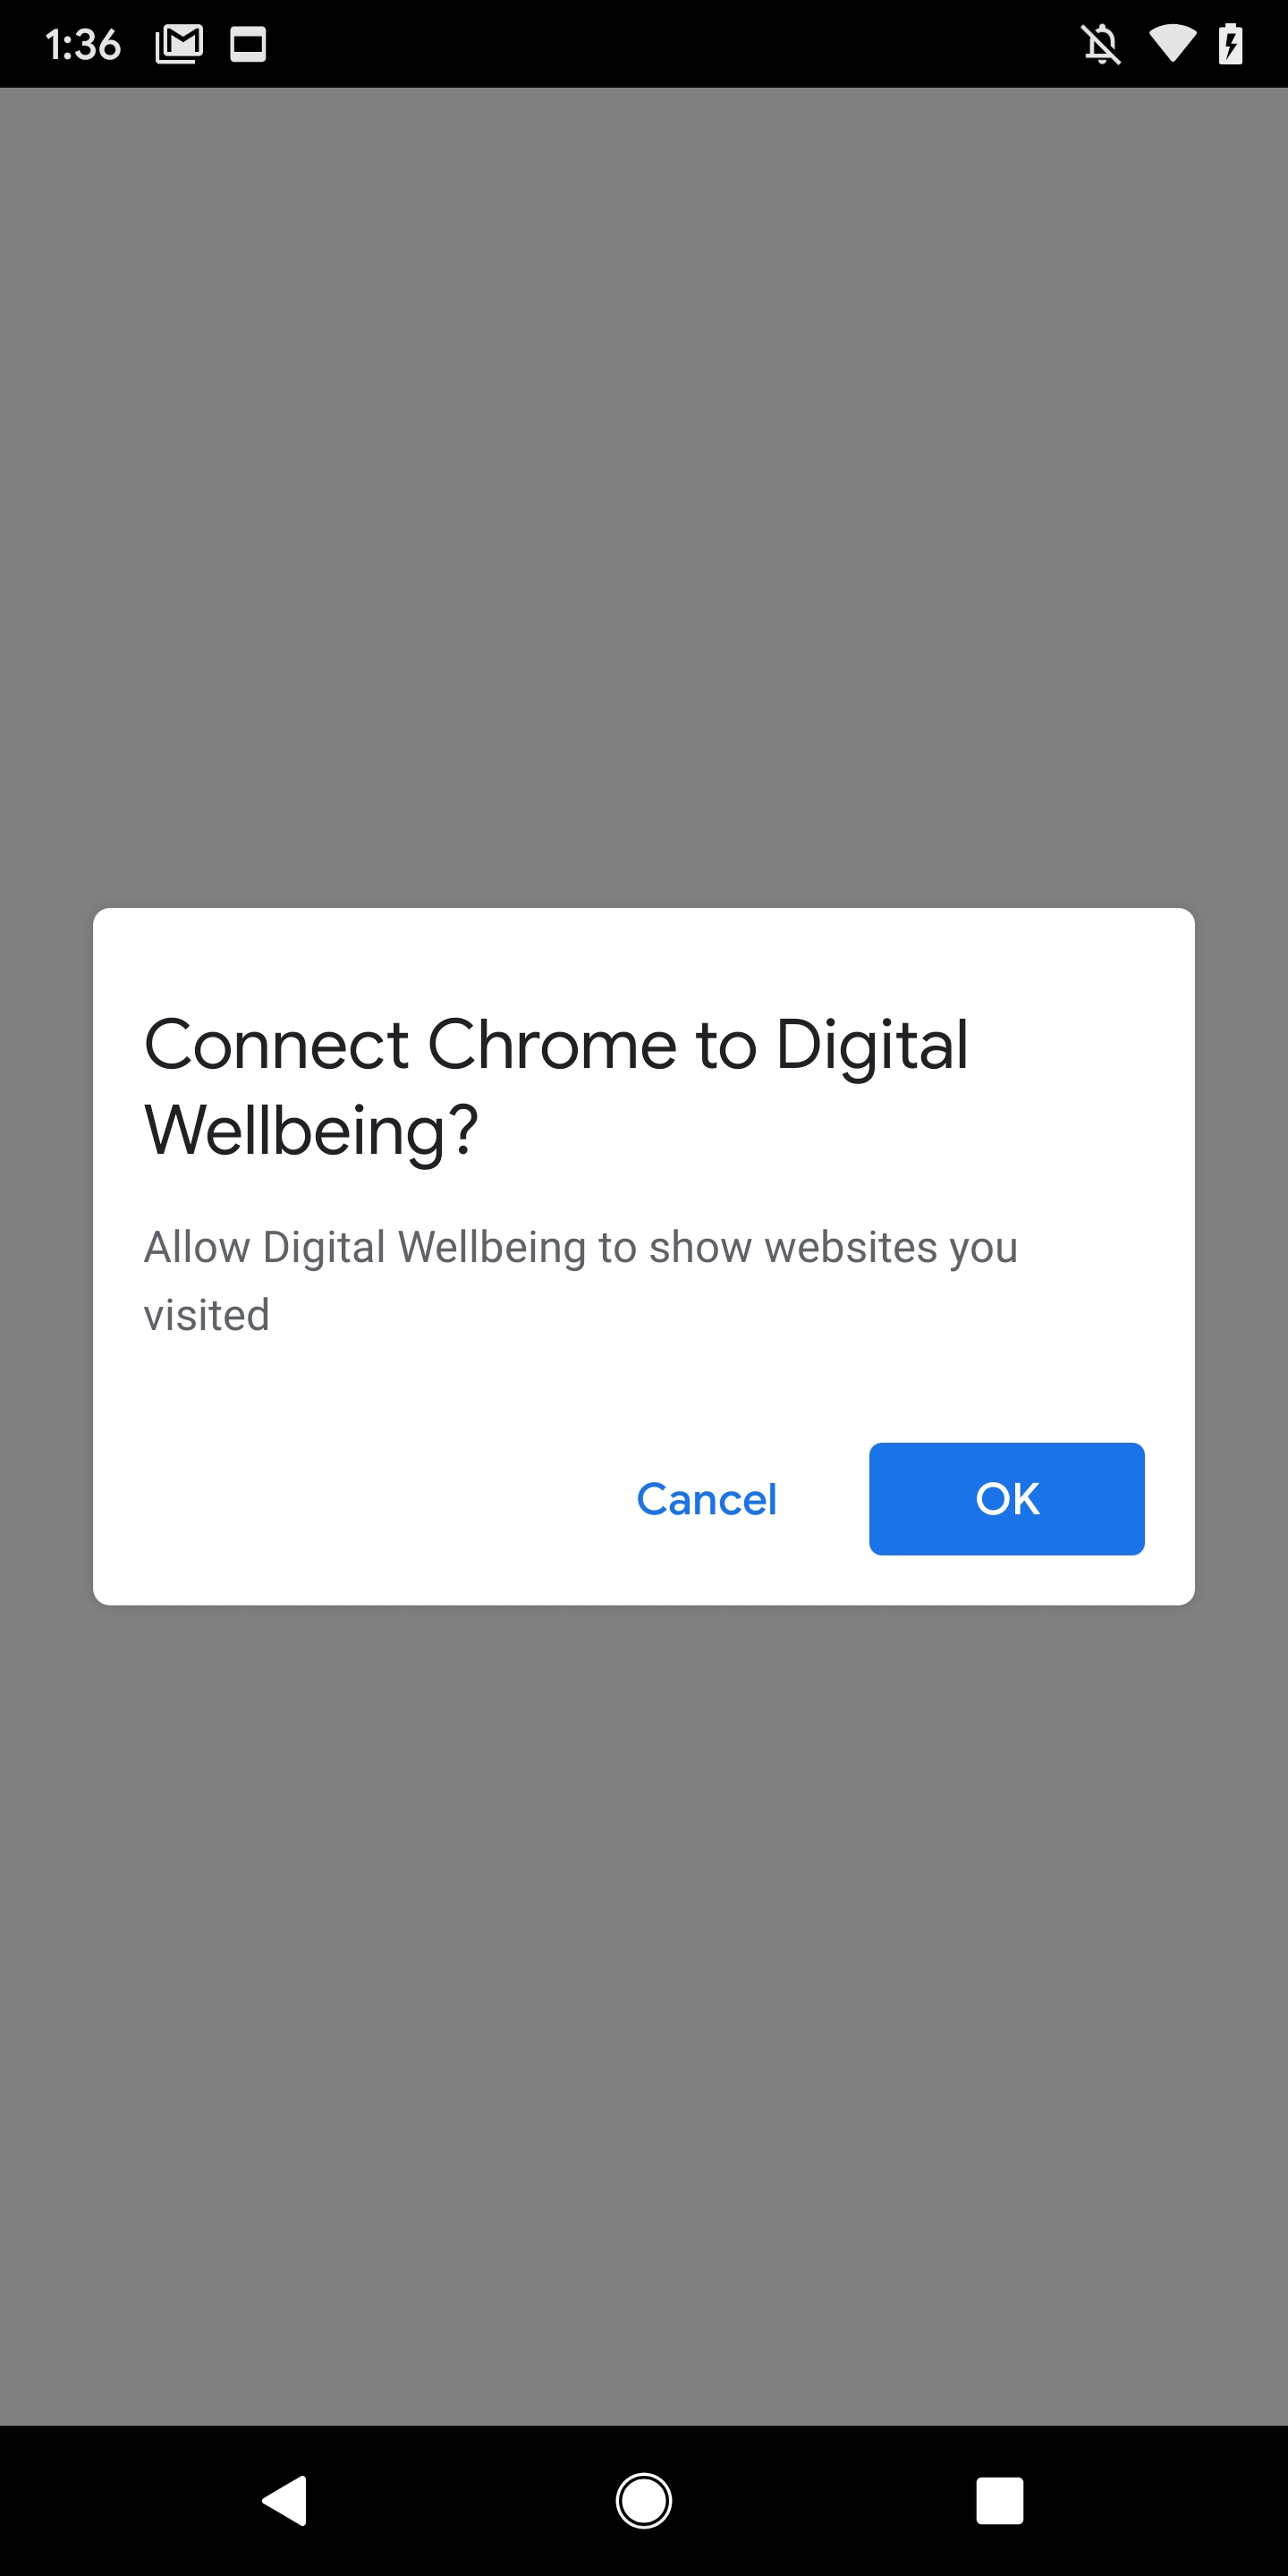 chrome-android-digital-wellbeing-permission